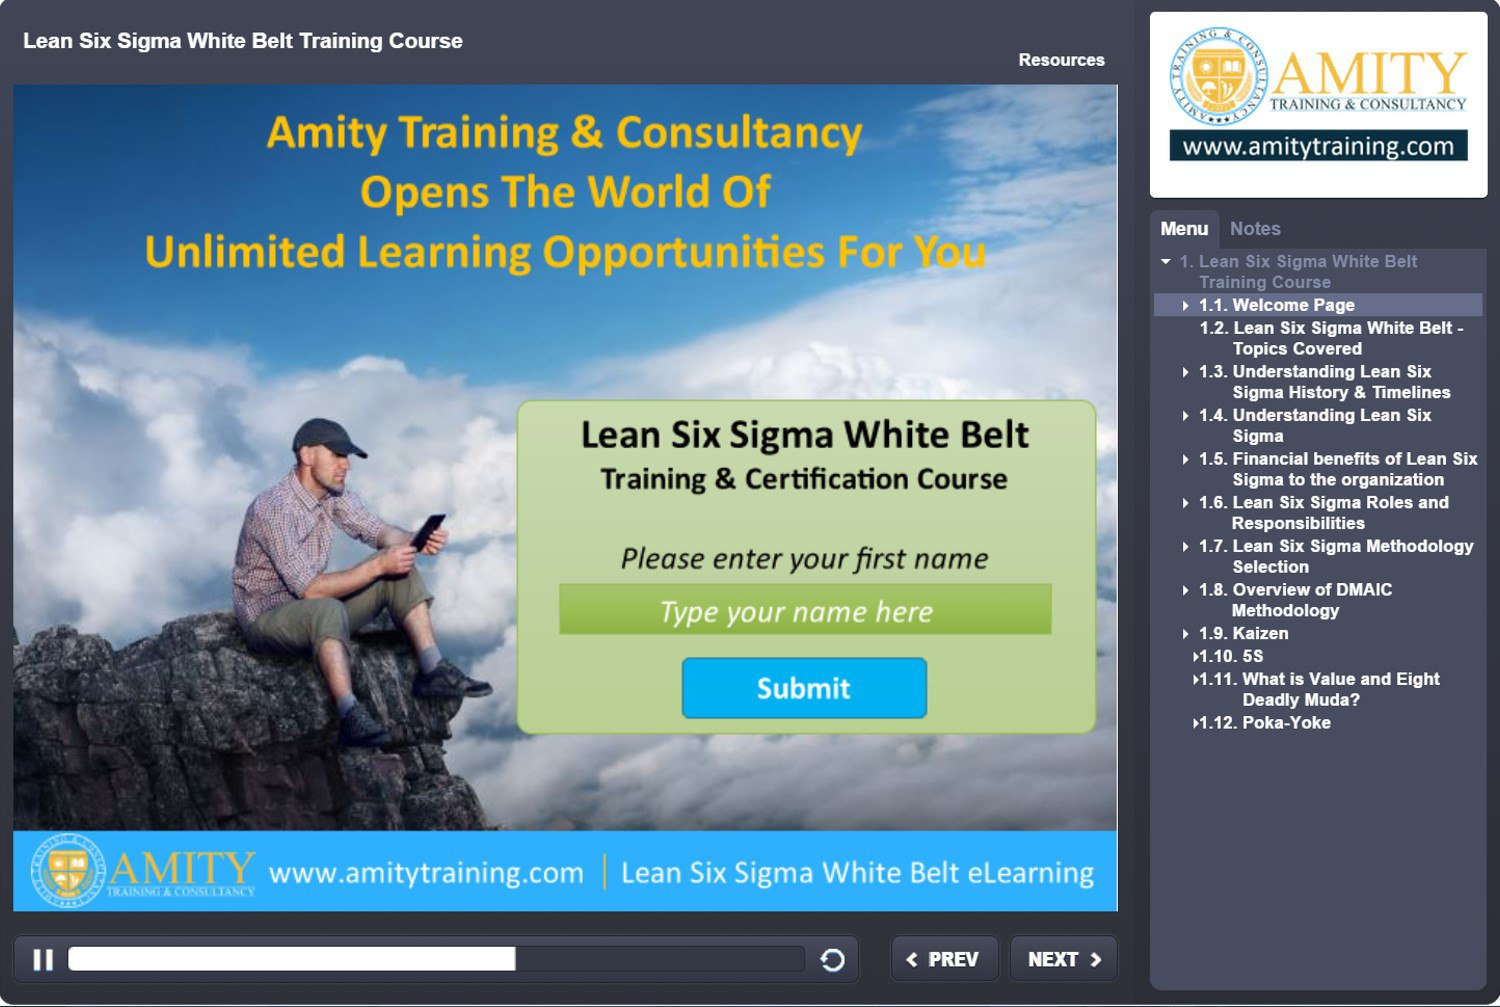 eLearning Course Development Using Articulate Storyline